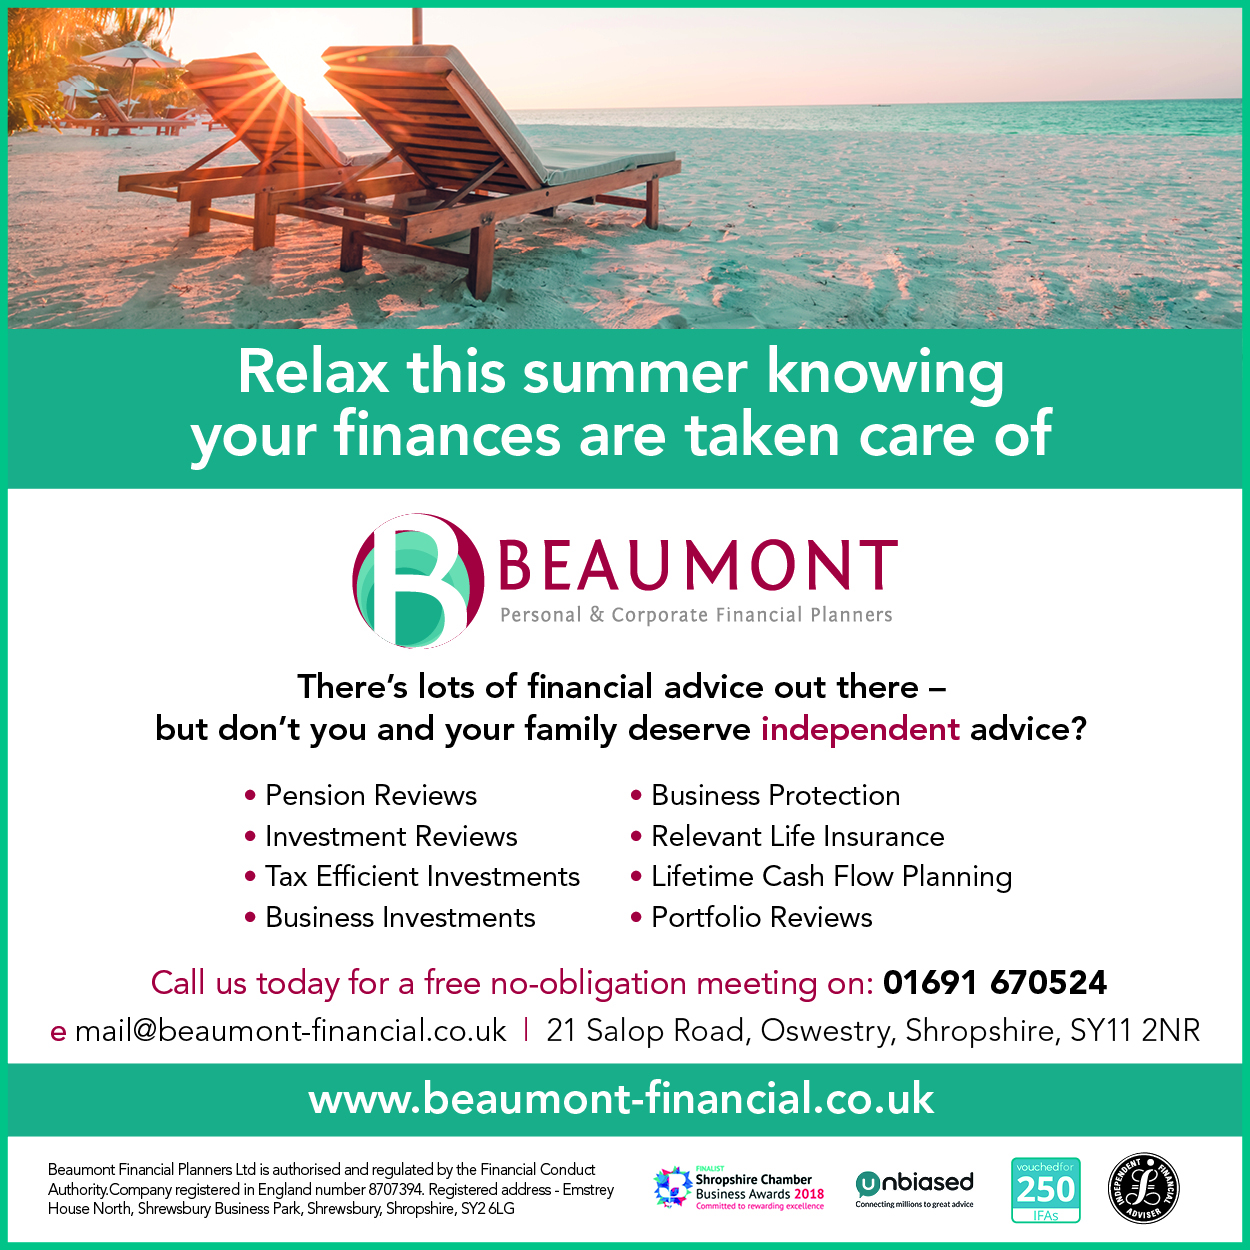 http://www.beaumont-financial.co.uk